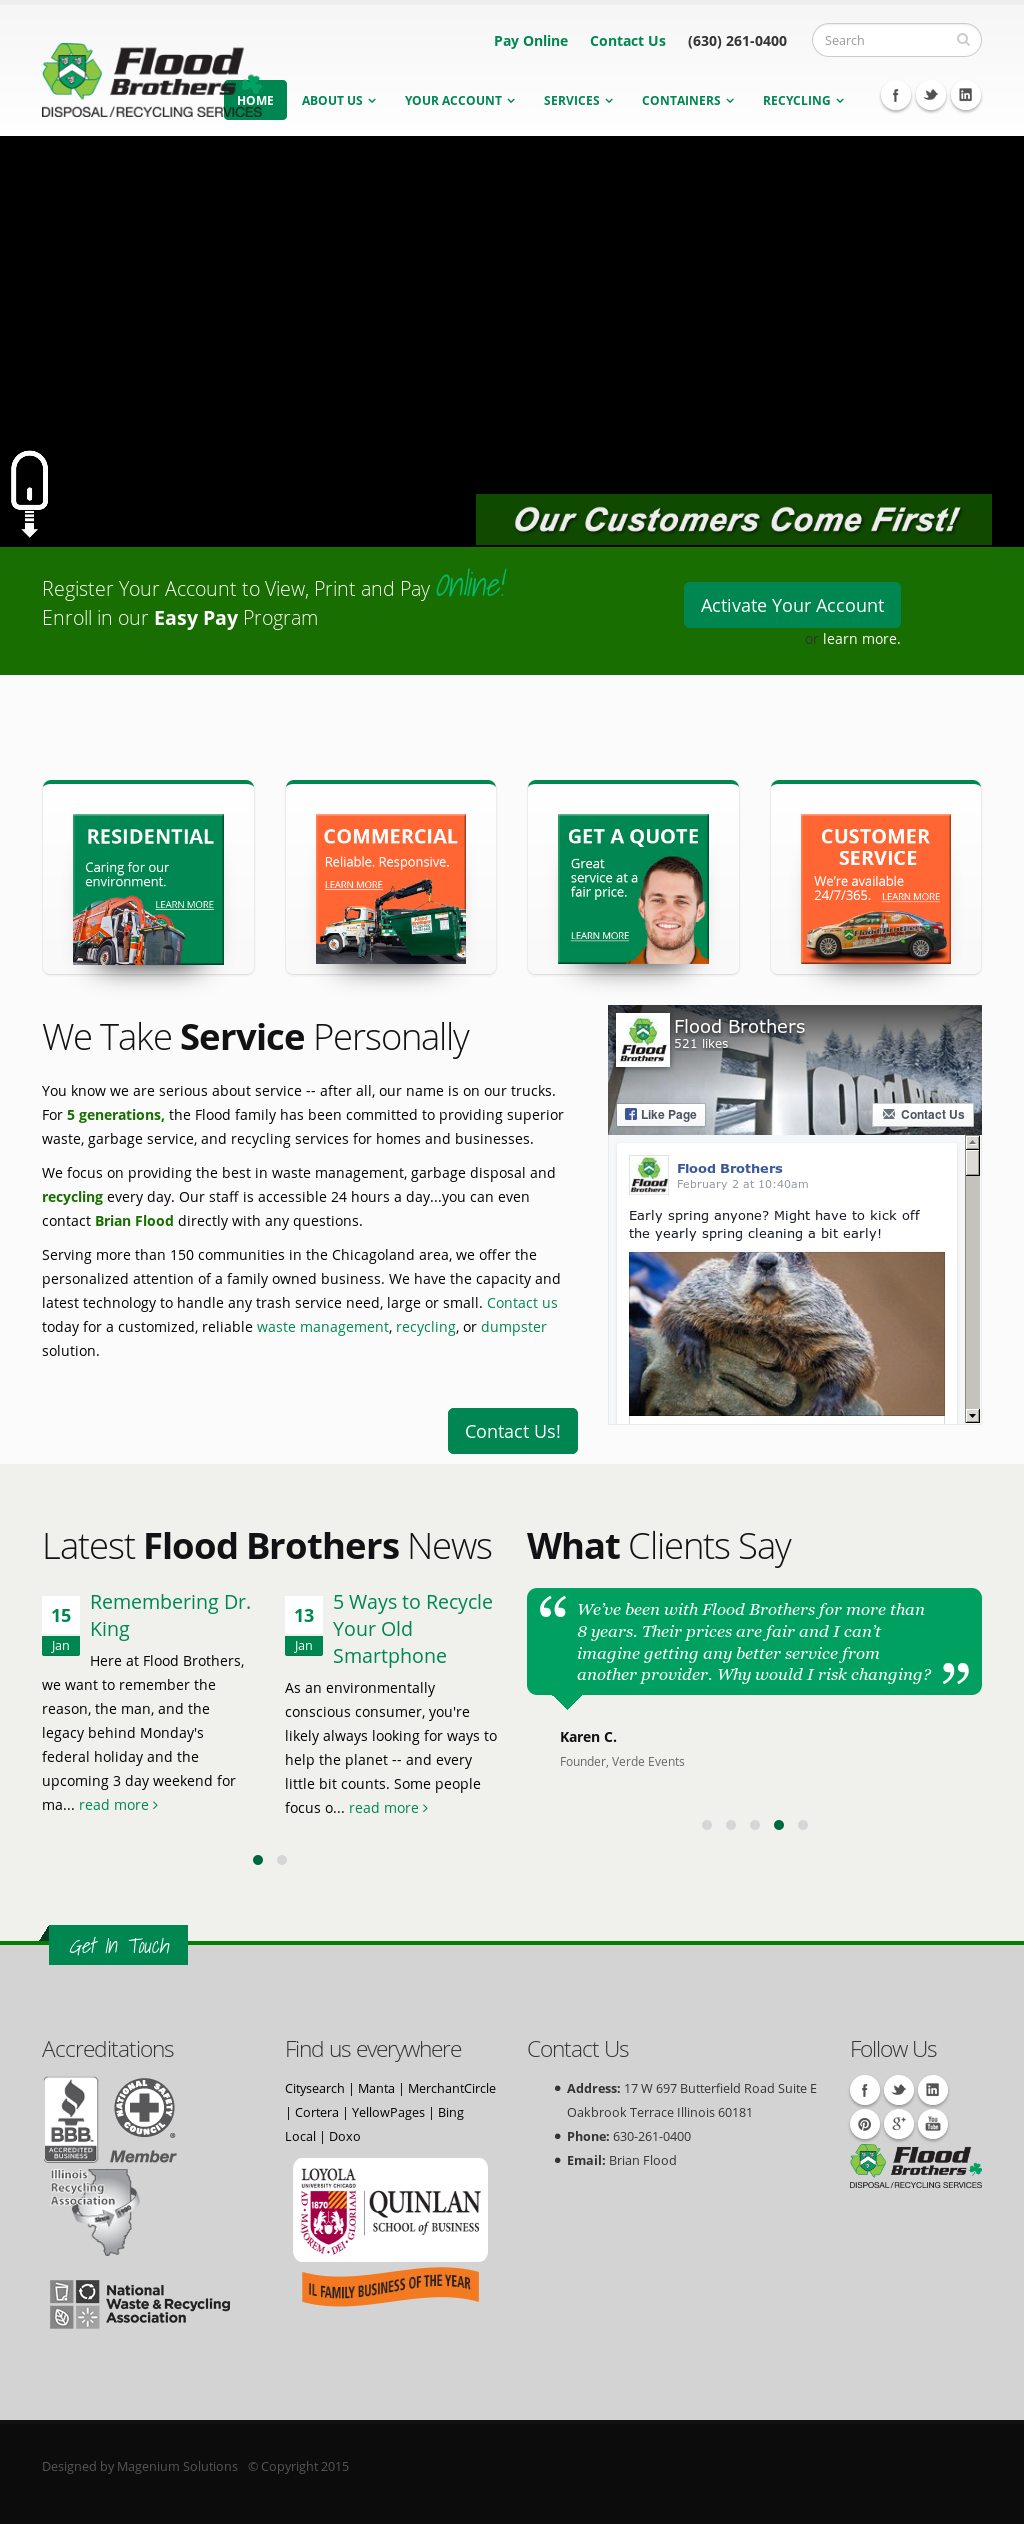 Flood brothers company profile owler for 17 west 720 butterfield road oakbrook terrace il 60181